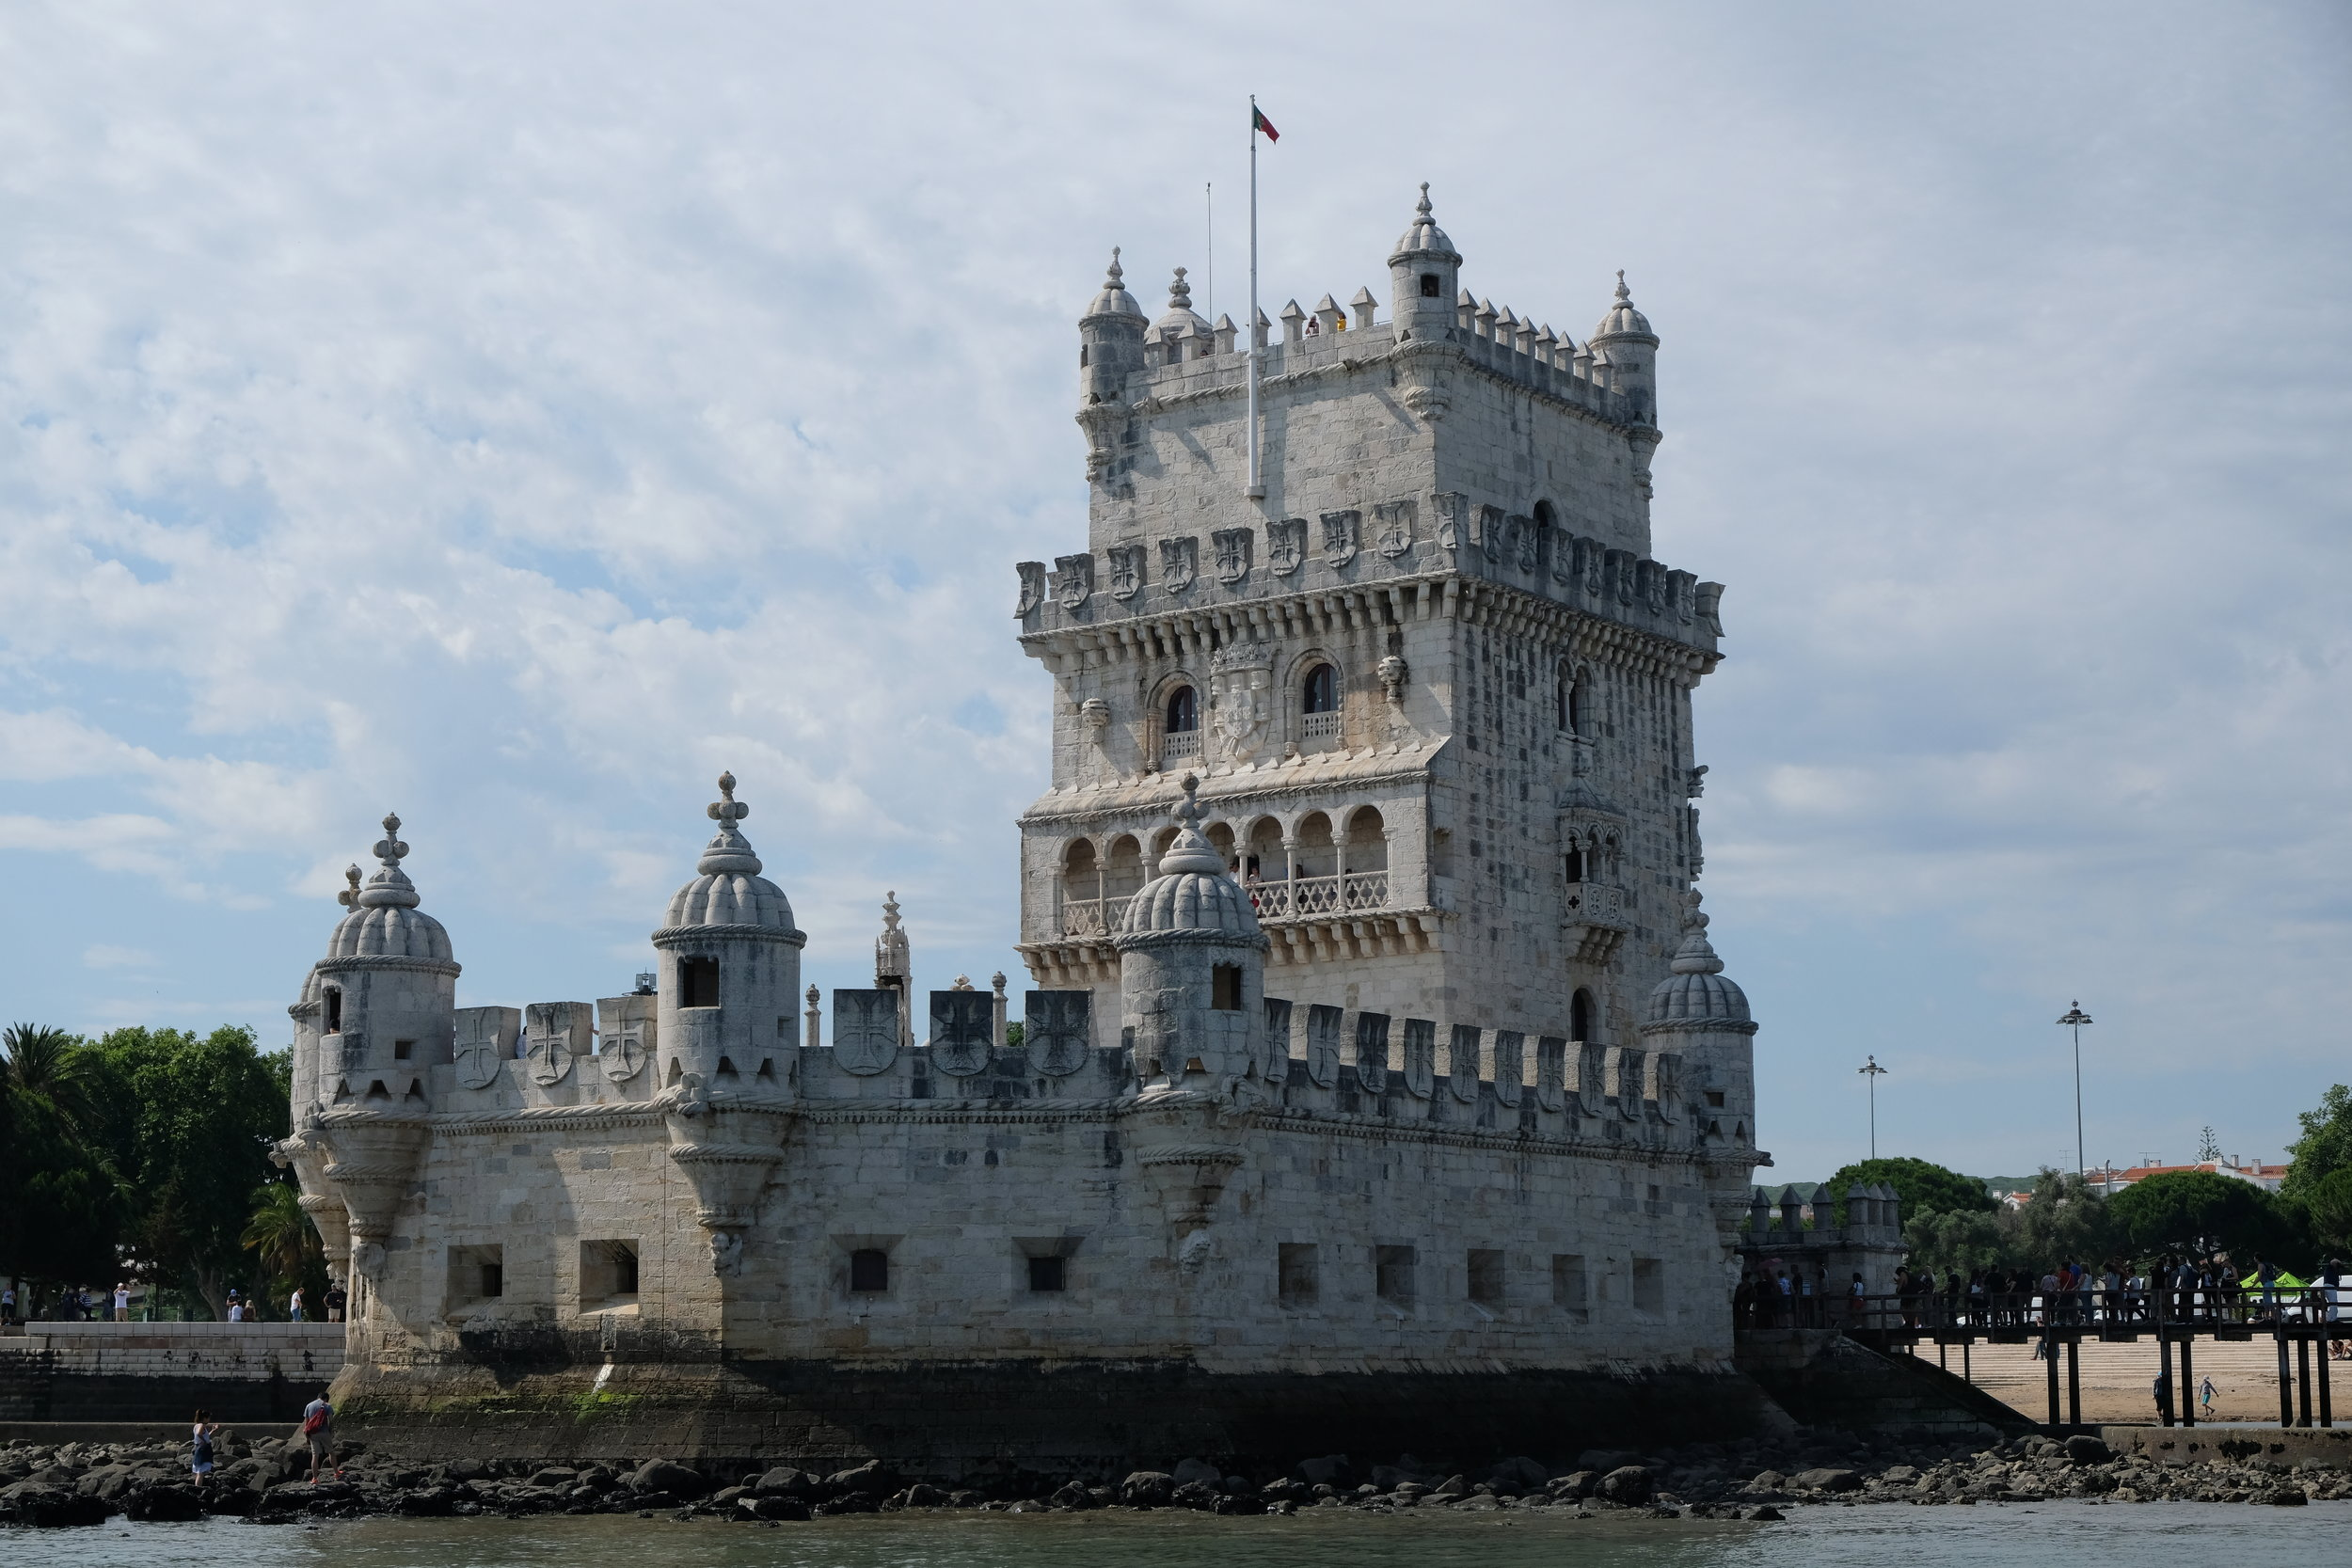 A view of the Torre de Belem from the Rio Tejo. Photo credit: Belinda Birchall